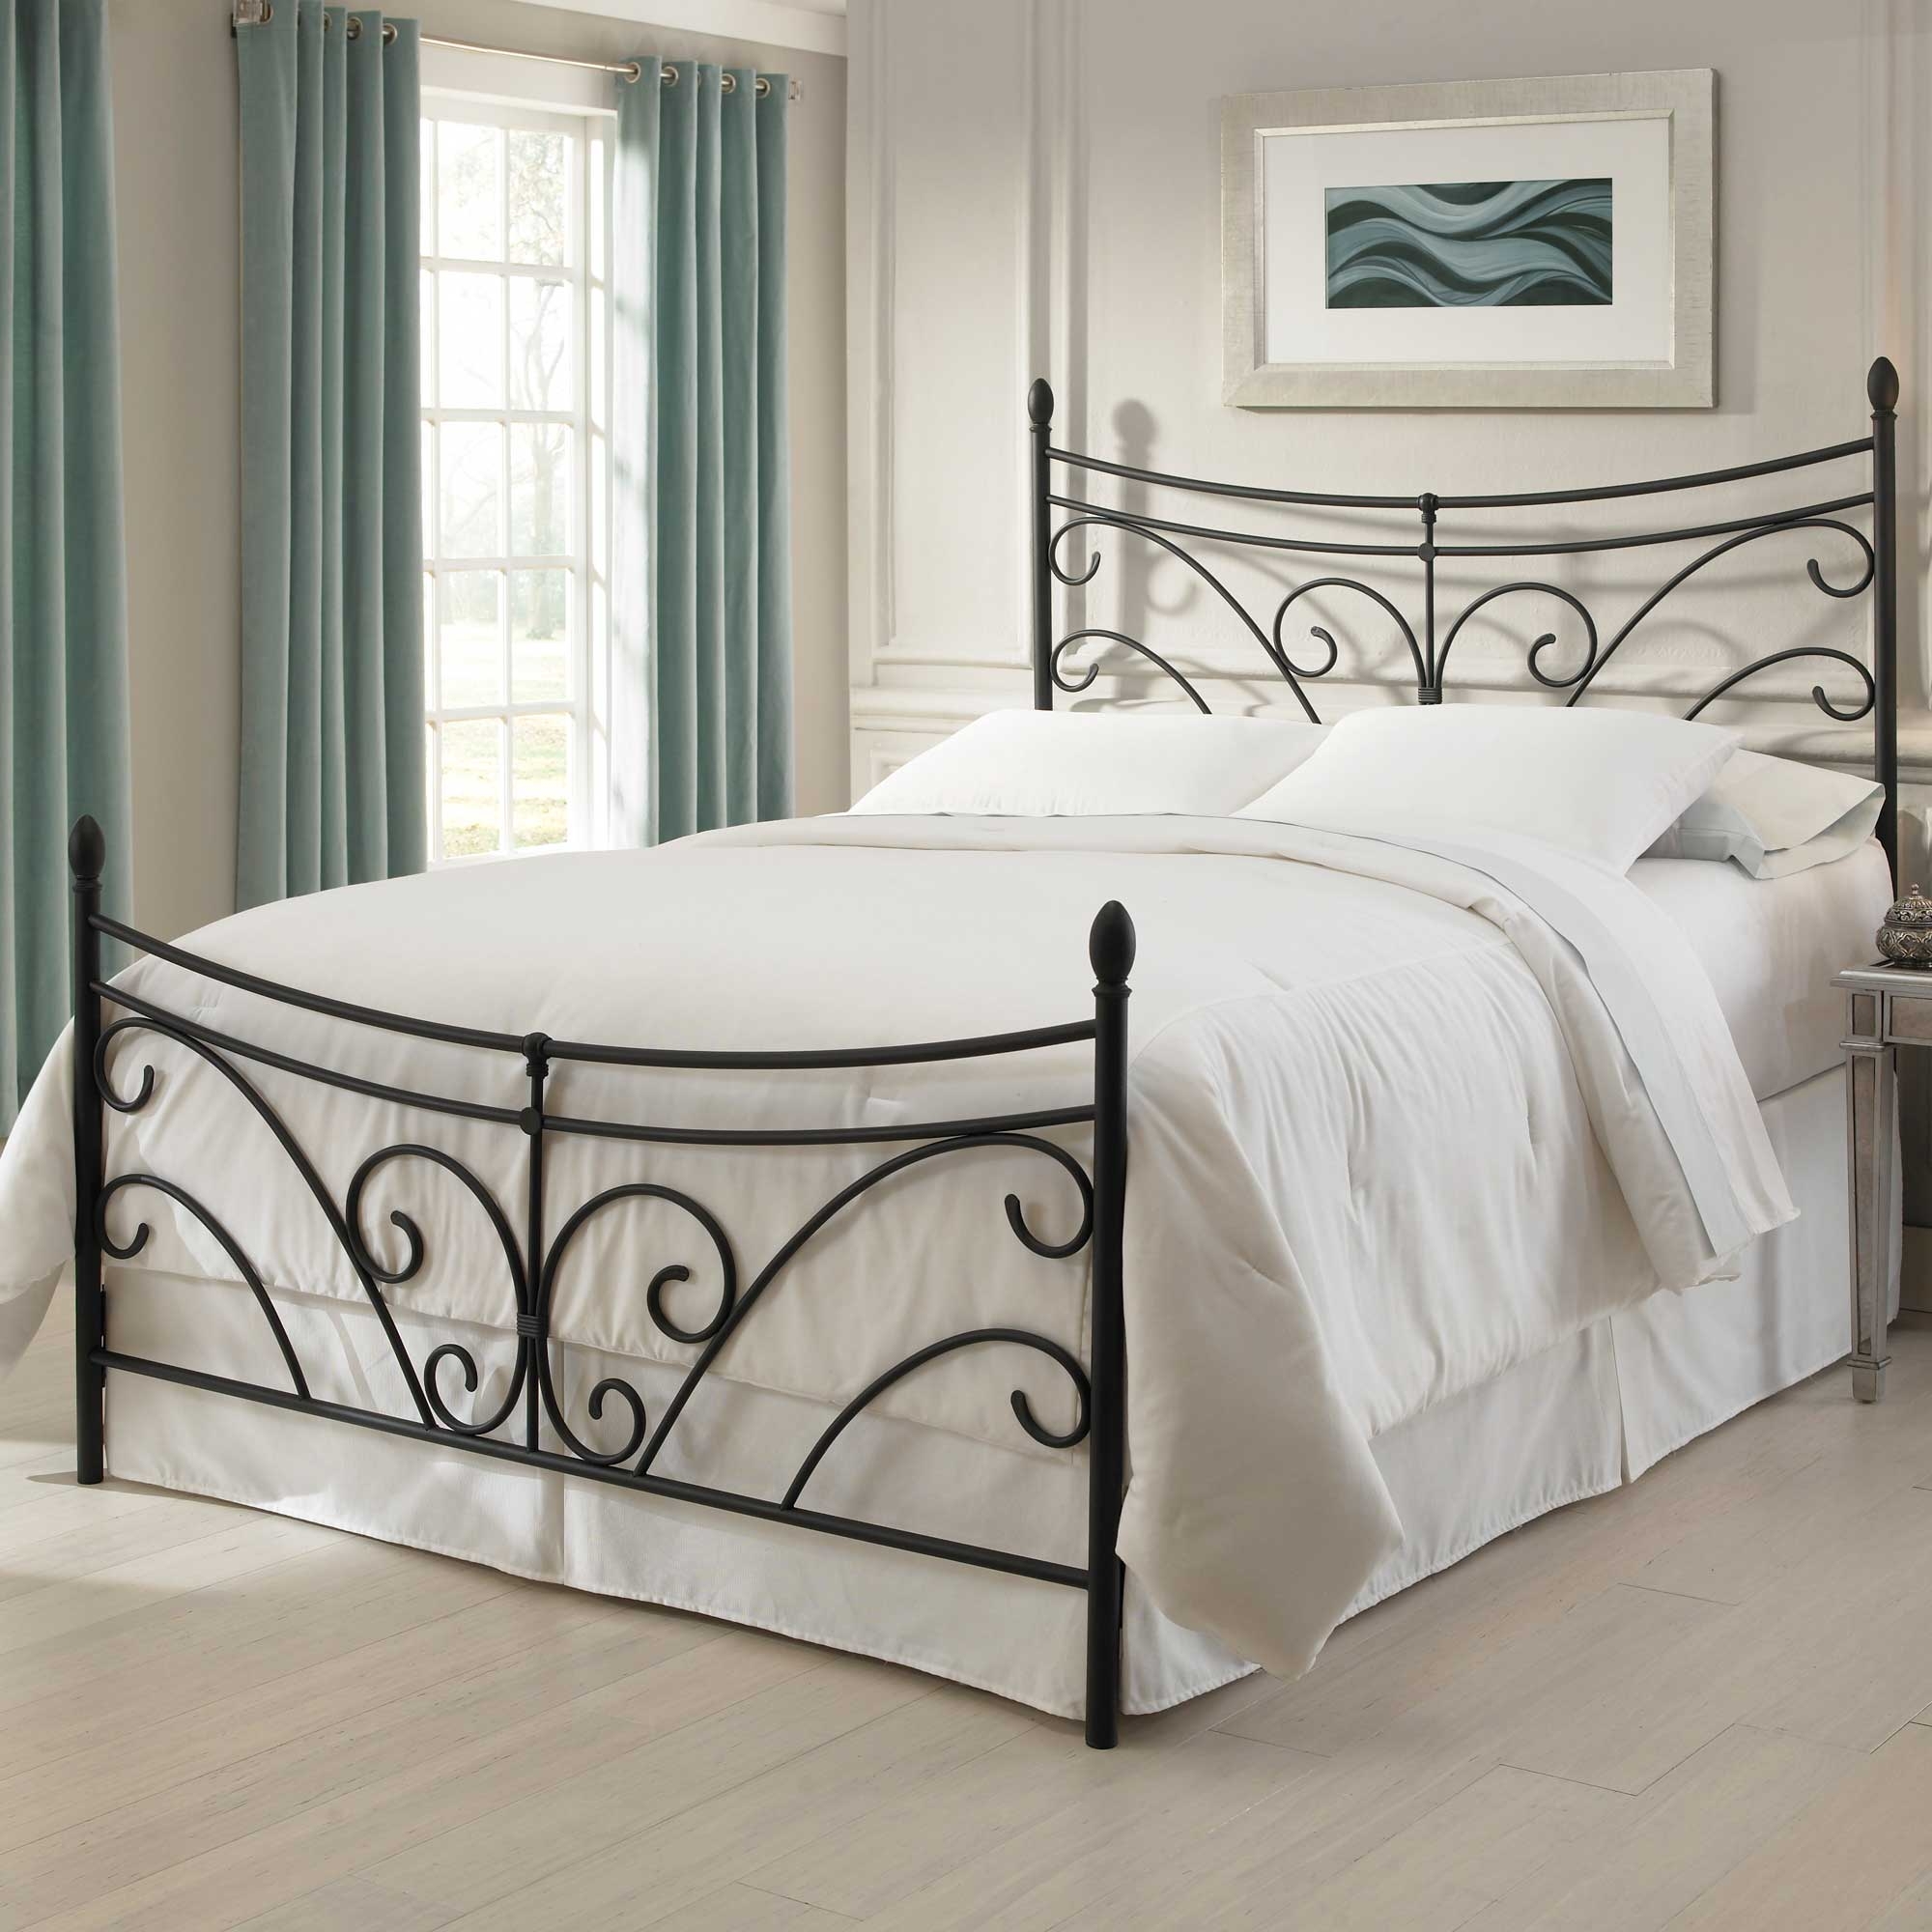 Bergen iron bed matte black finish curving scroll design for Iron bedroom furniture